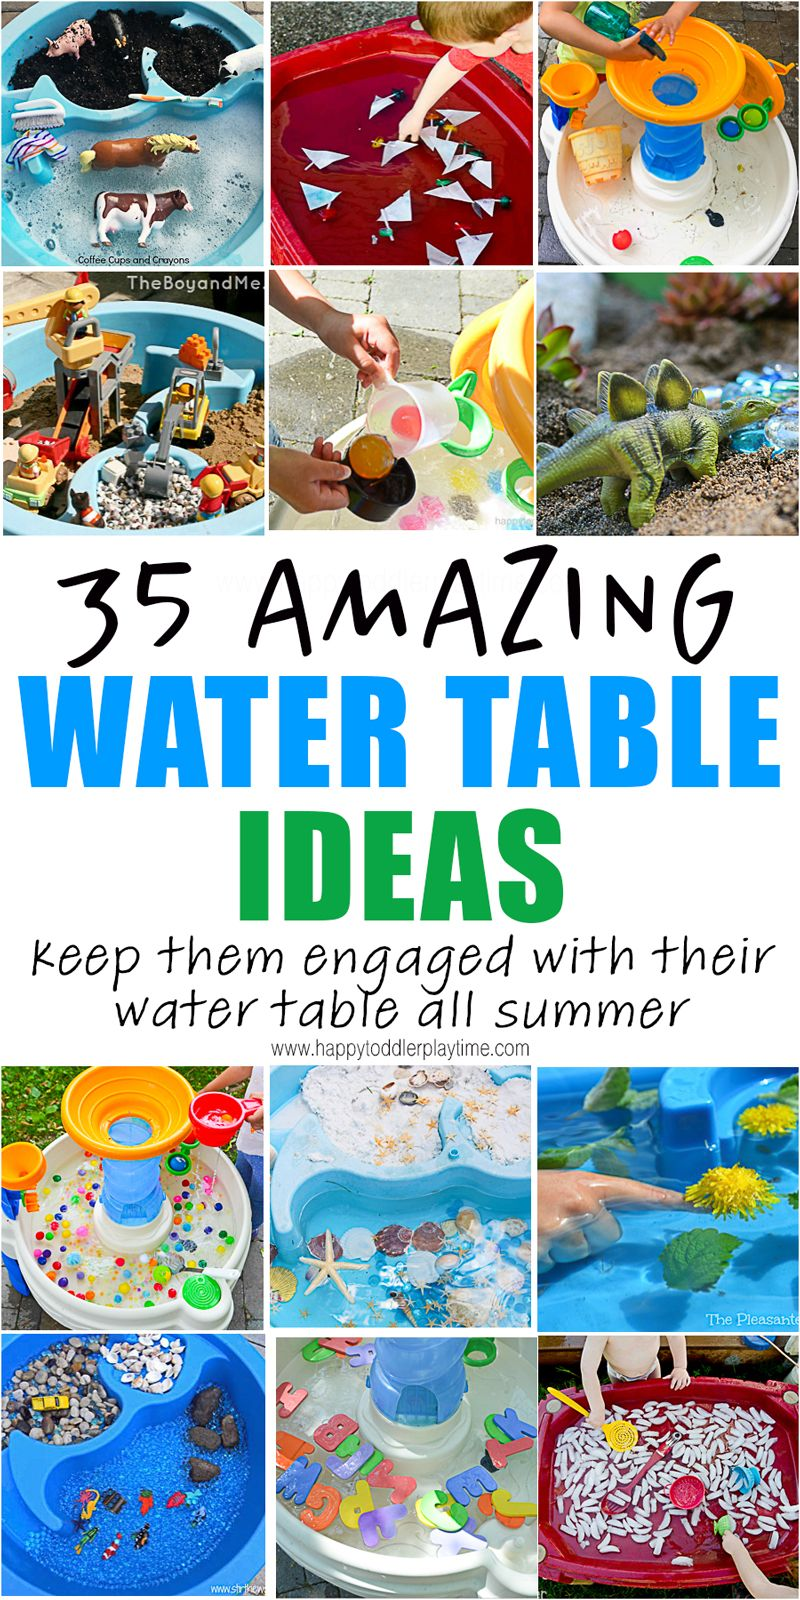 Photo of 35 Amazing Water Table Ideas for Summer